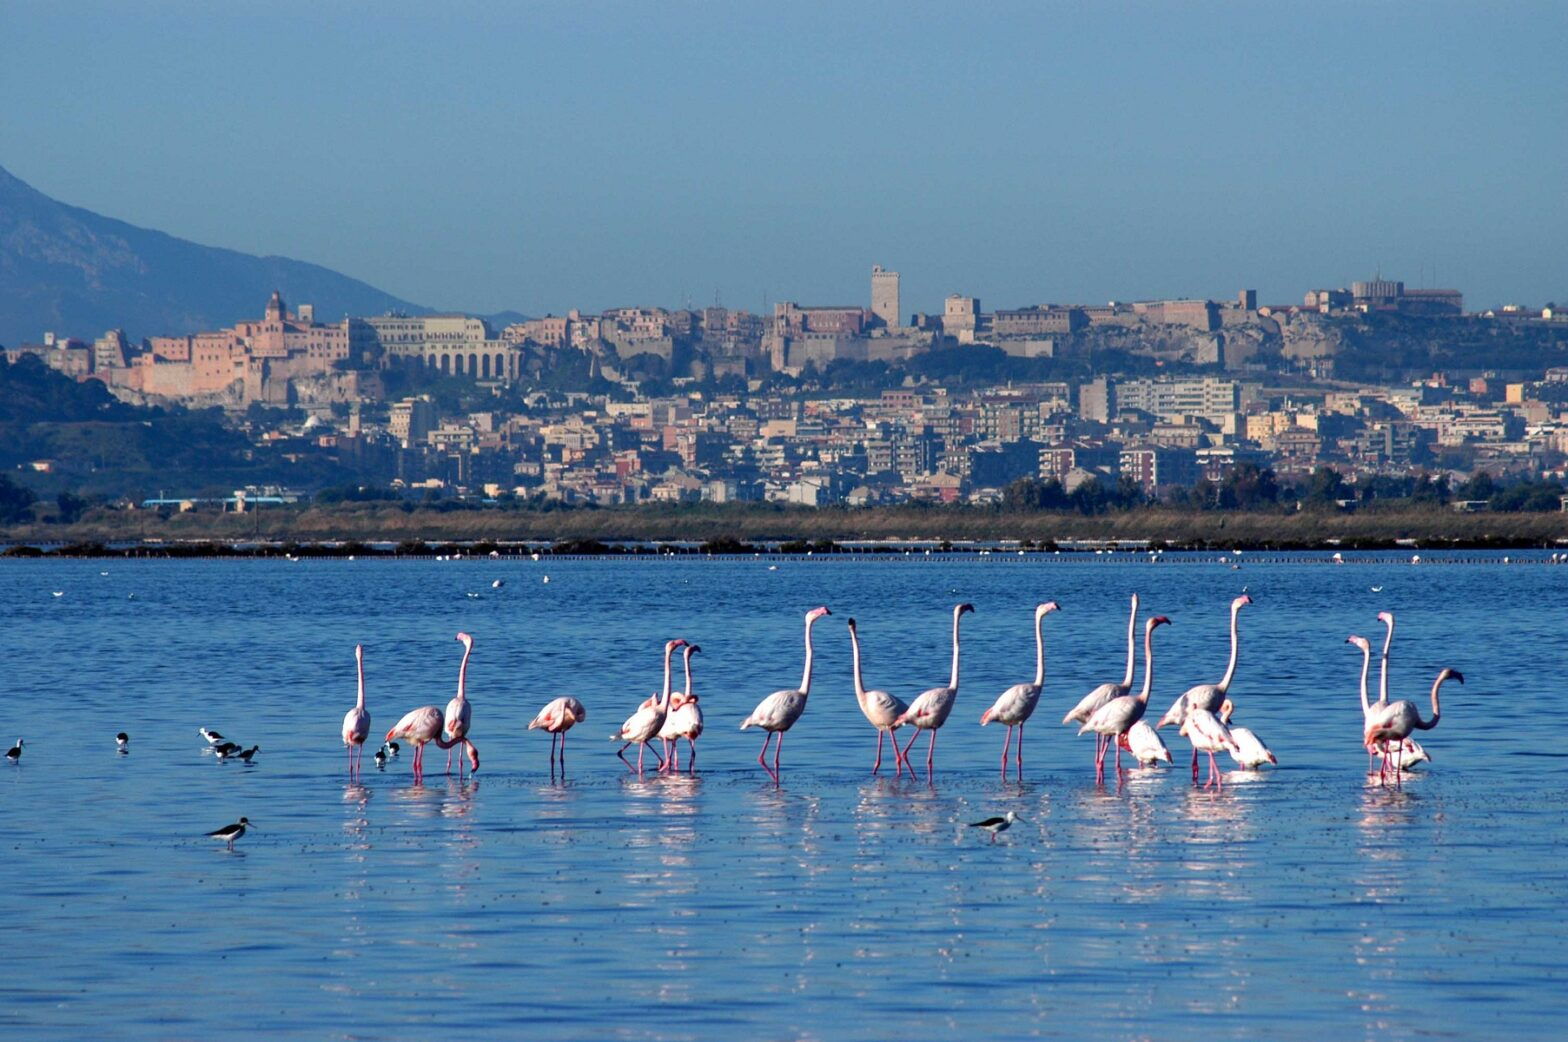 Day Tours of Cagliari: Visit Cagliari By Tours and Excursions at Sella del Diavolo, Poetto beach, Molentargius.. Excusion by boat, Bike Tours, Cooking Experience